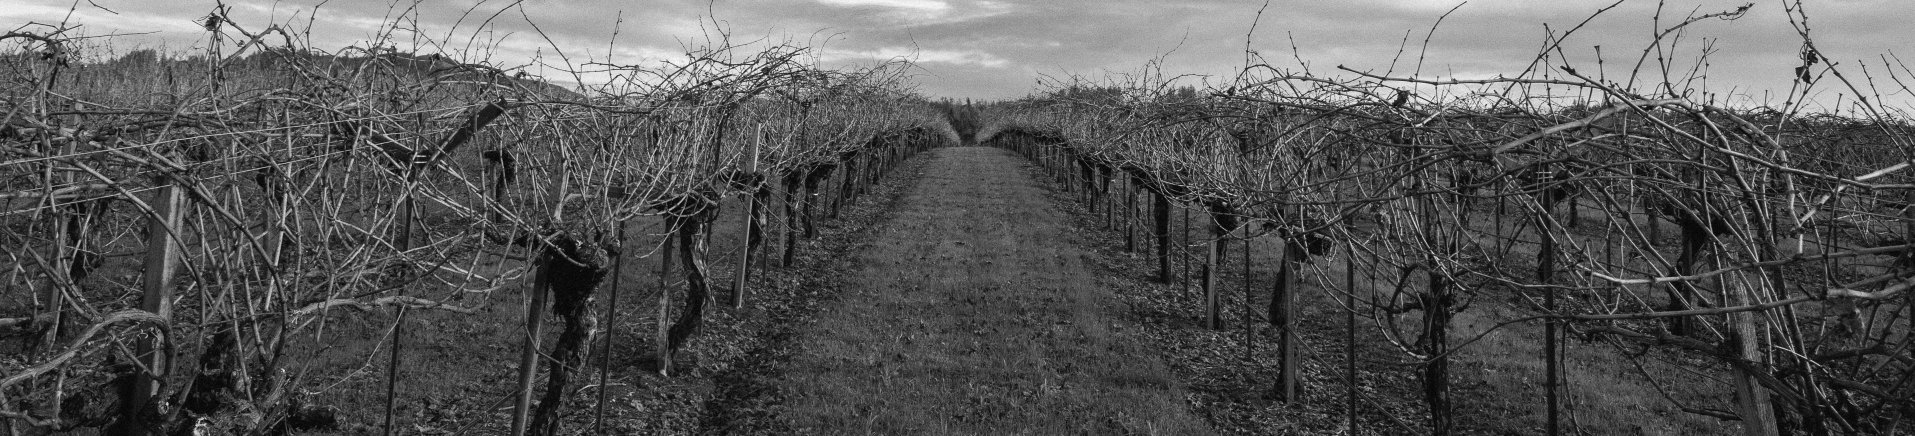 Our vines during dormancy before being pruned. A remarkable physiological change occurs within the vine to allows it to endure the cold winter months.